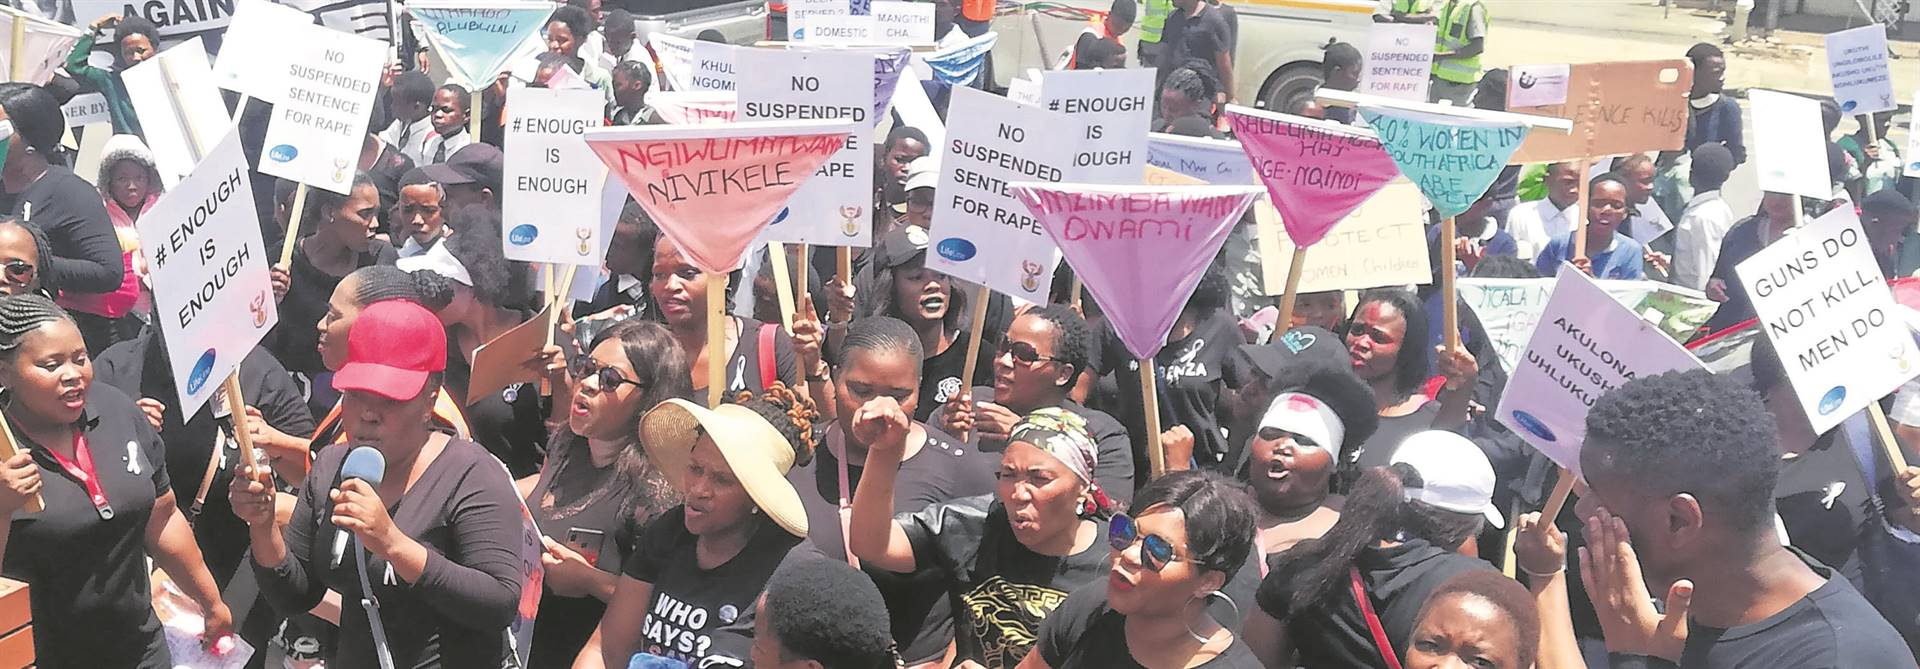 PHOTO: lethiwe makhanyaLifeLine joined with other organisations outside the Pietermaritzburg Maintenance and Sexual Offences Court to deliver their memorandum.